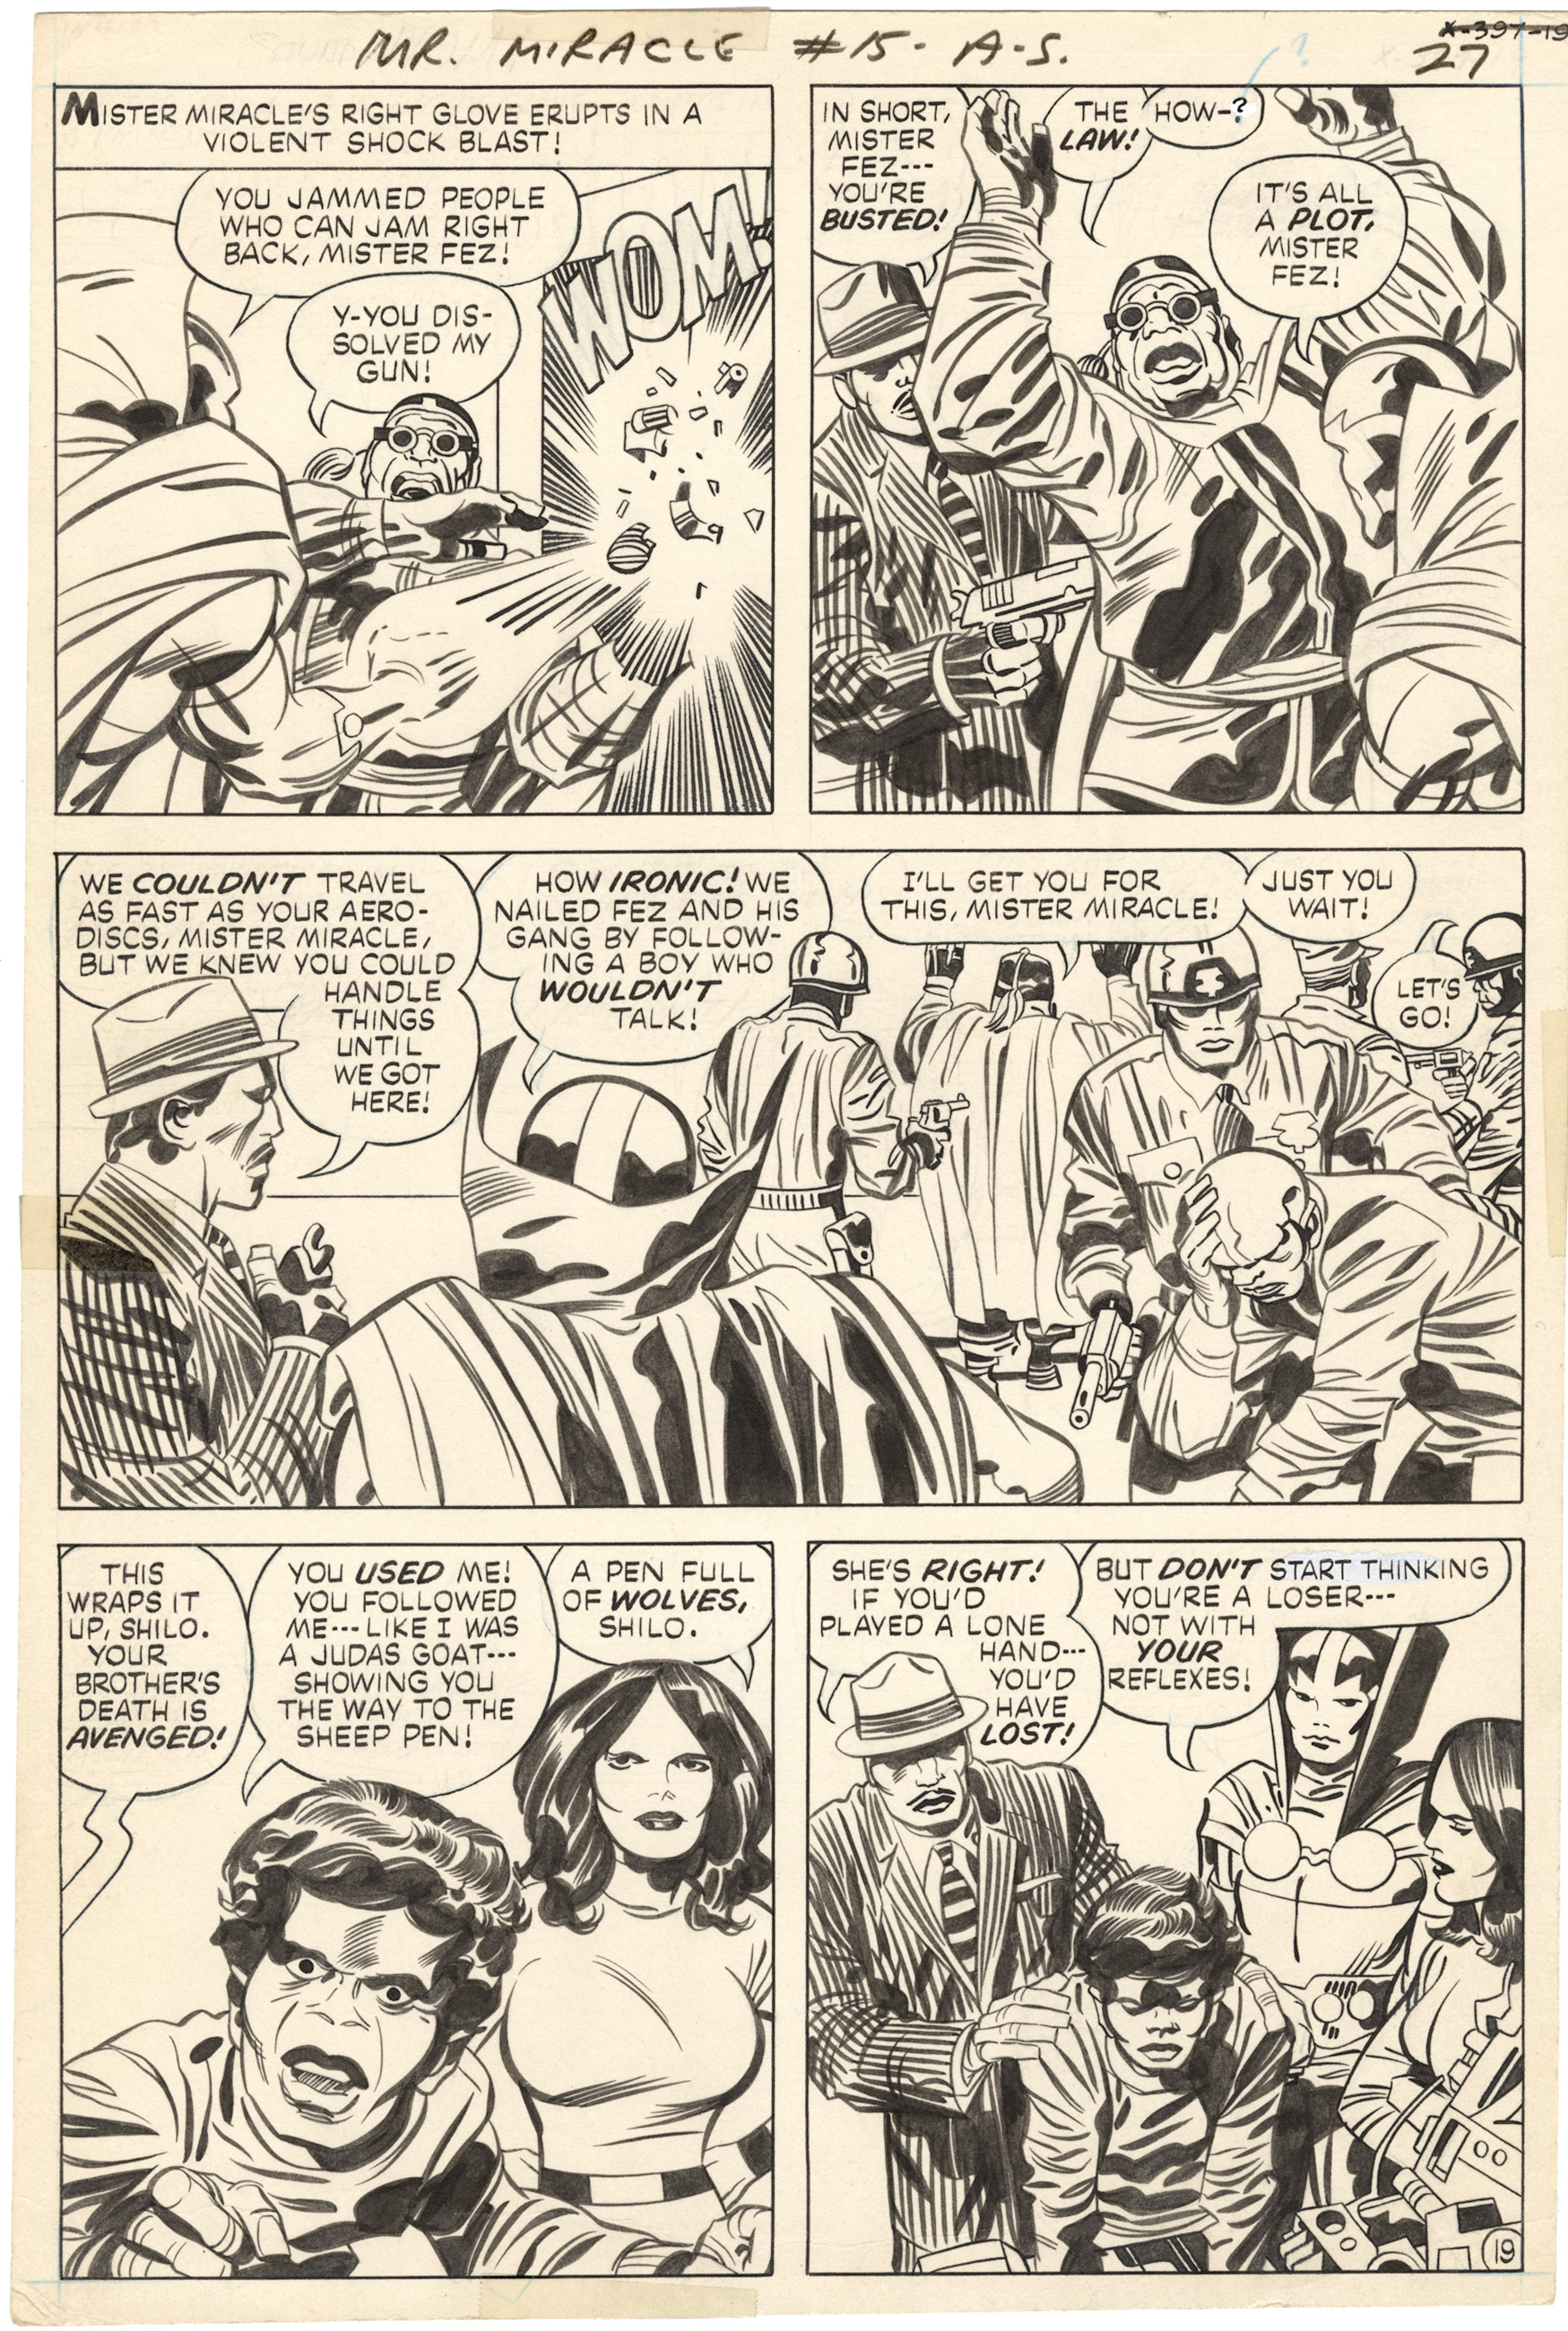 Mister Miracle #15 p19